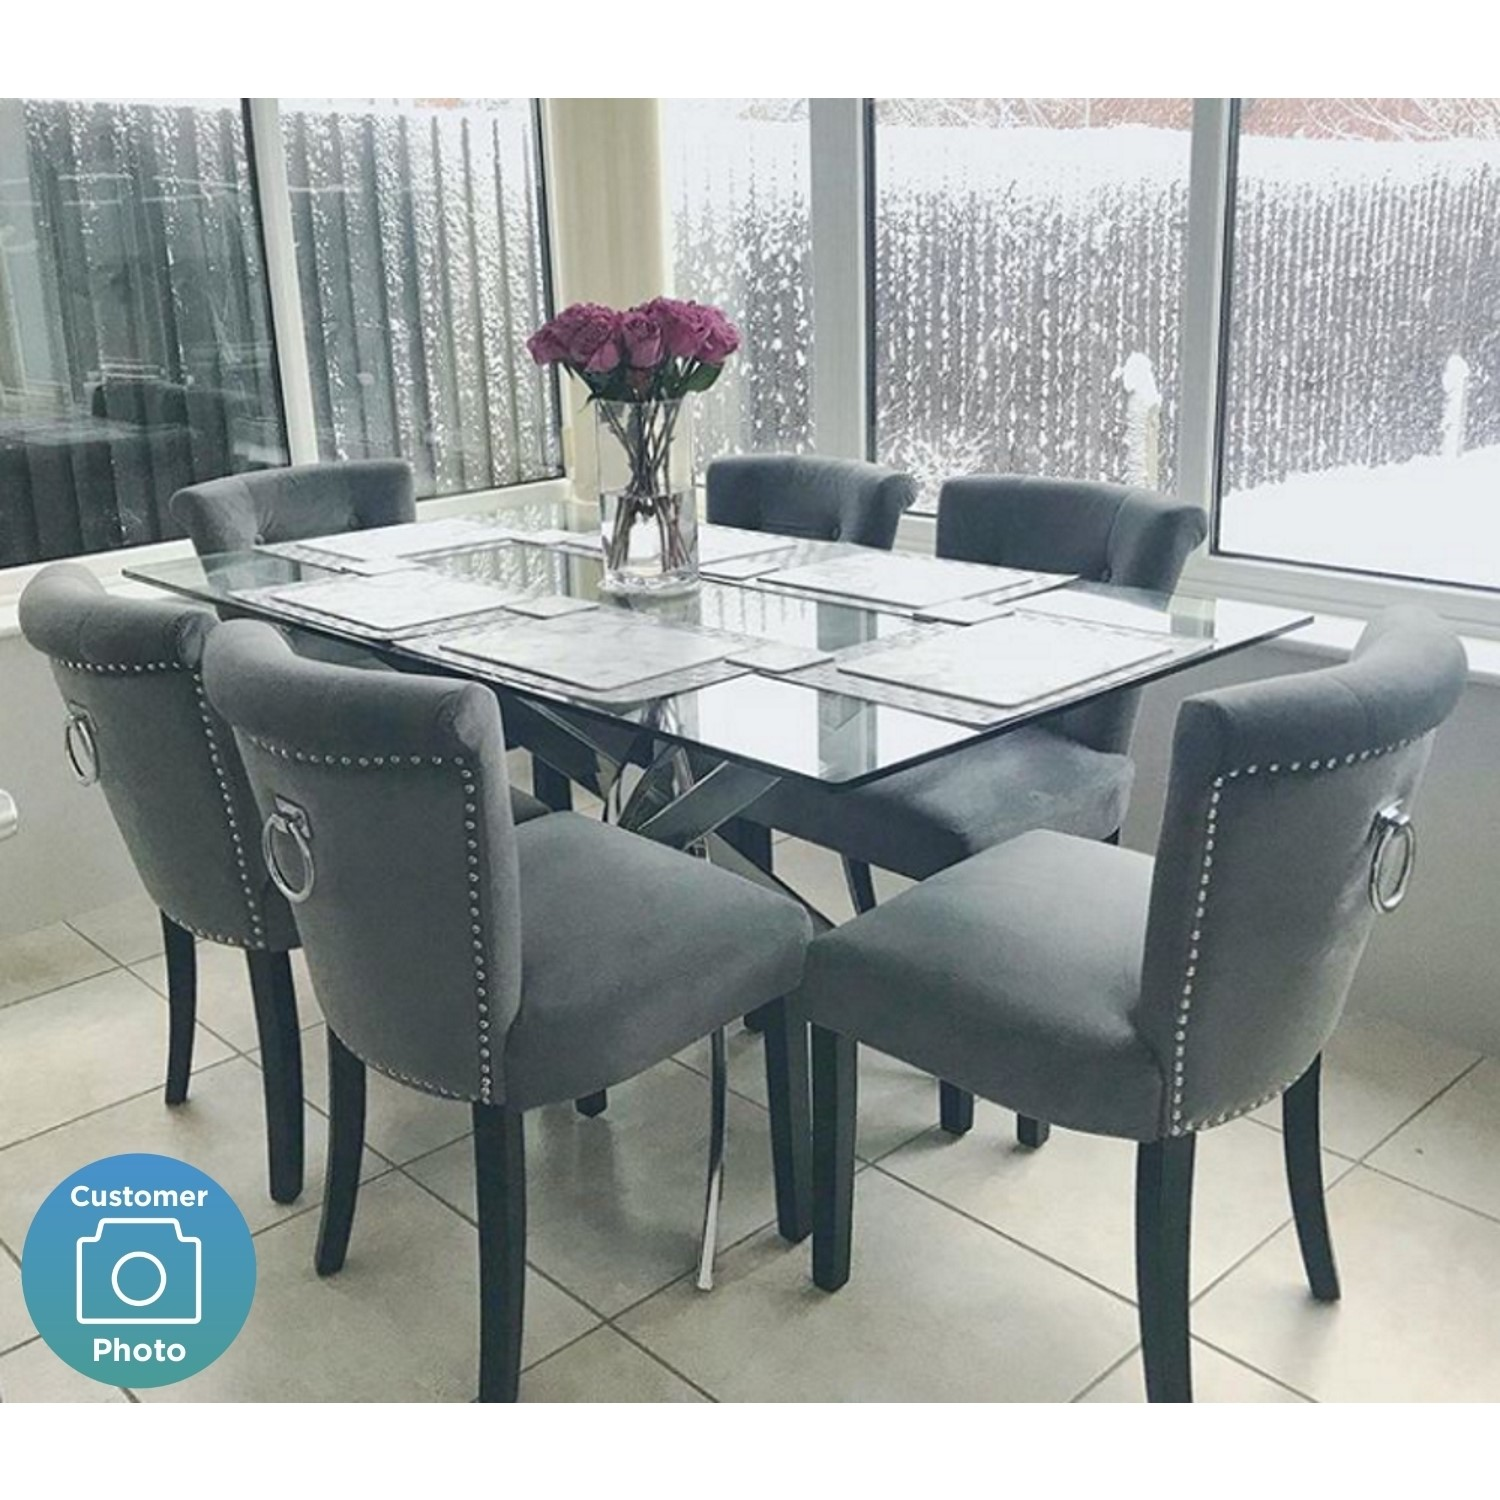 Picture of: Glass Dining Table With Chrome Base Seats 6 Vida Living Kalmar Furniture123